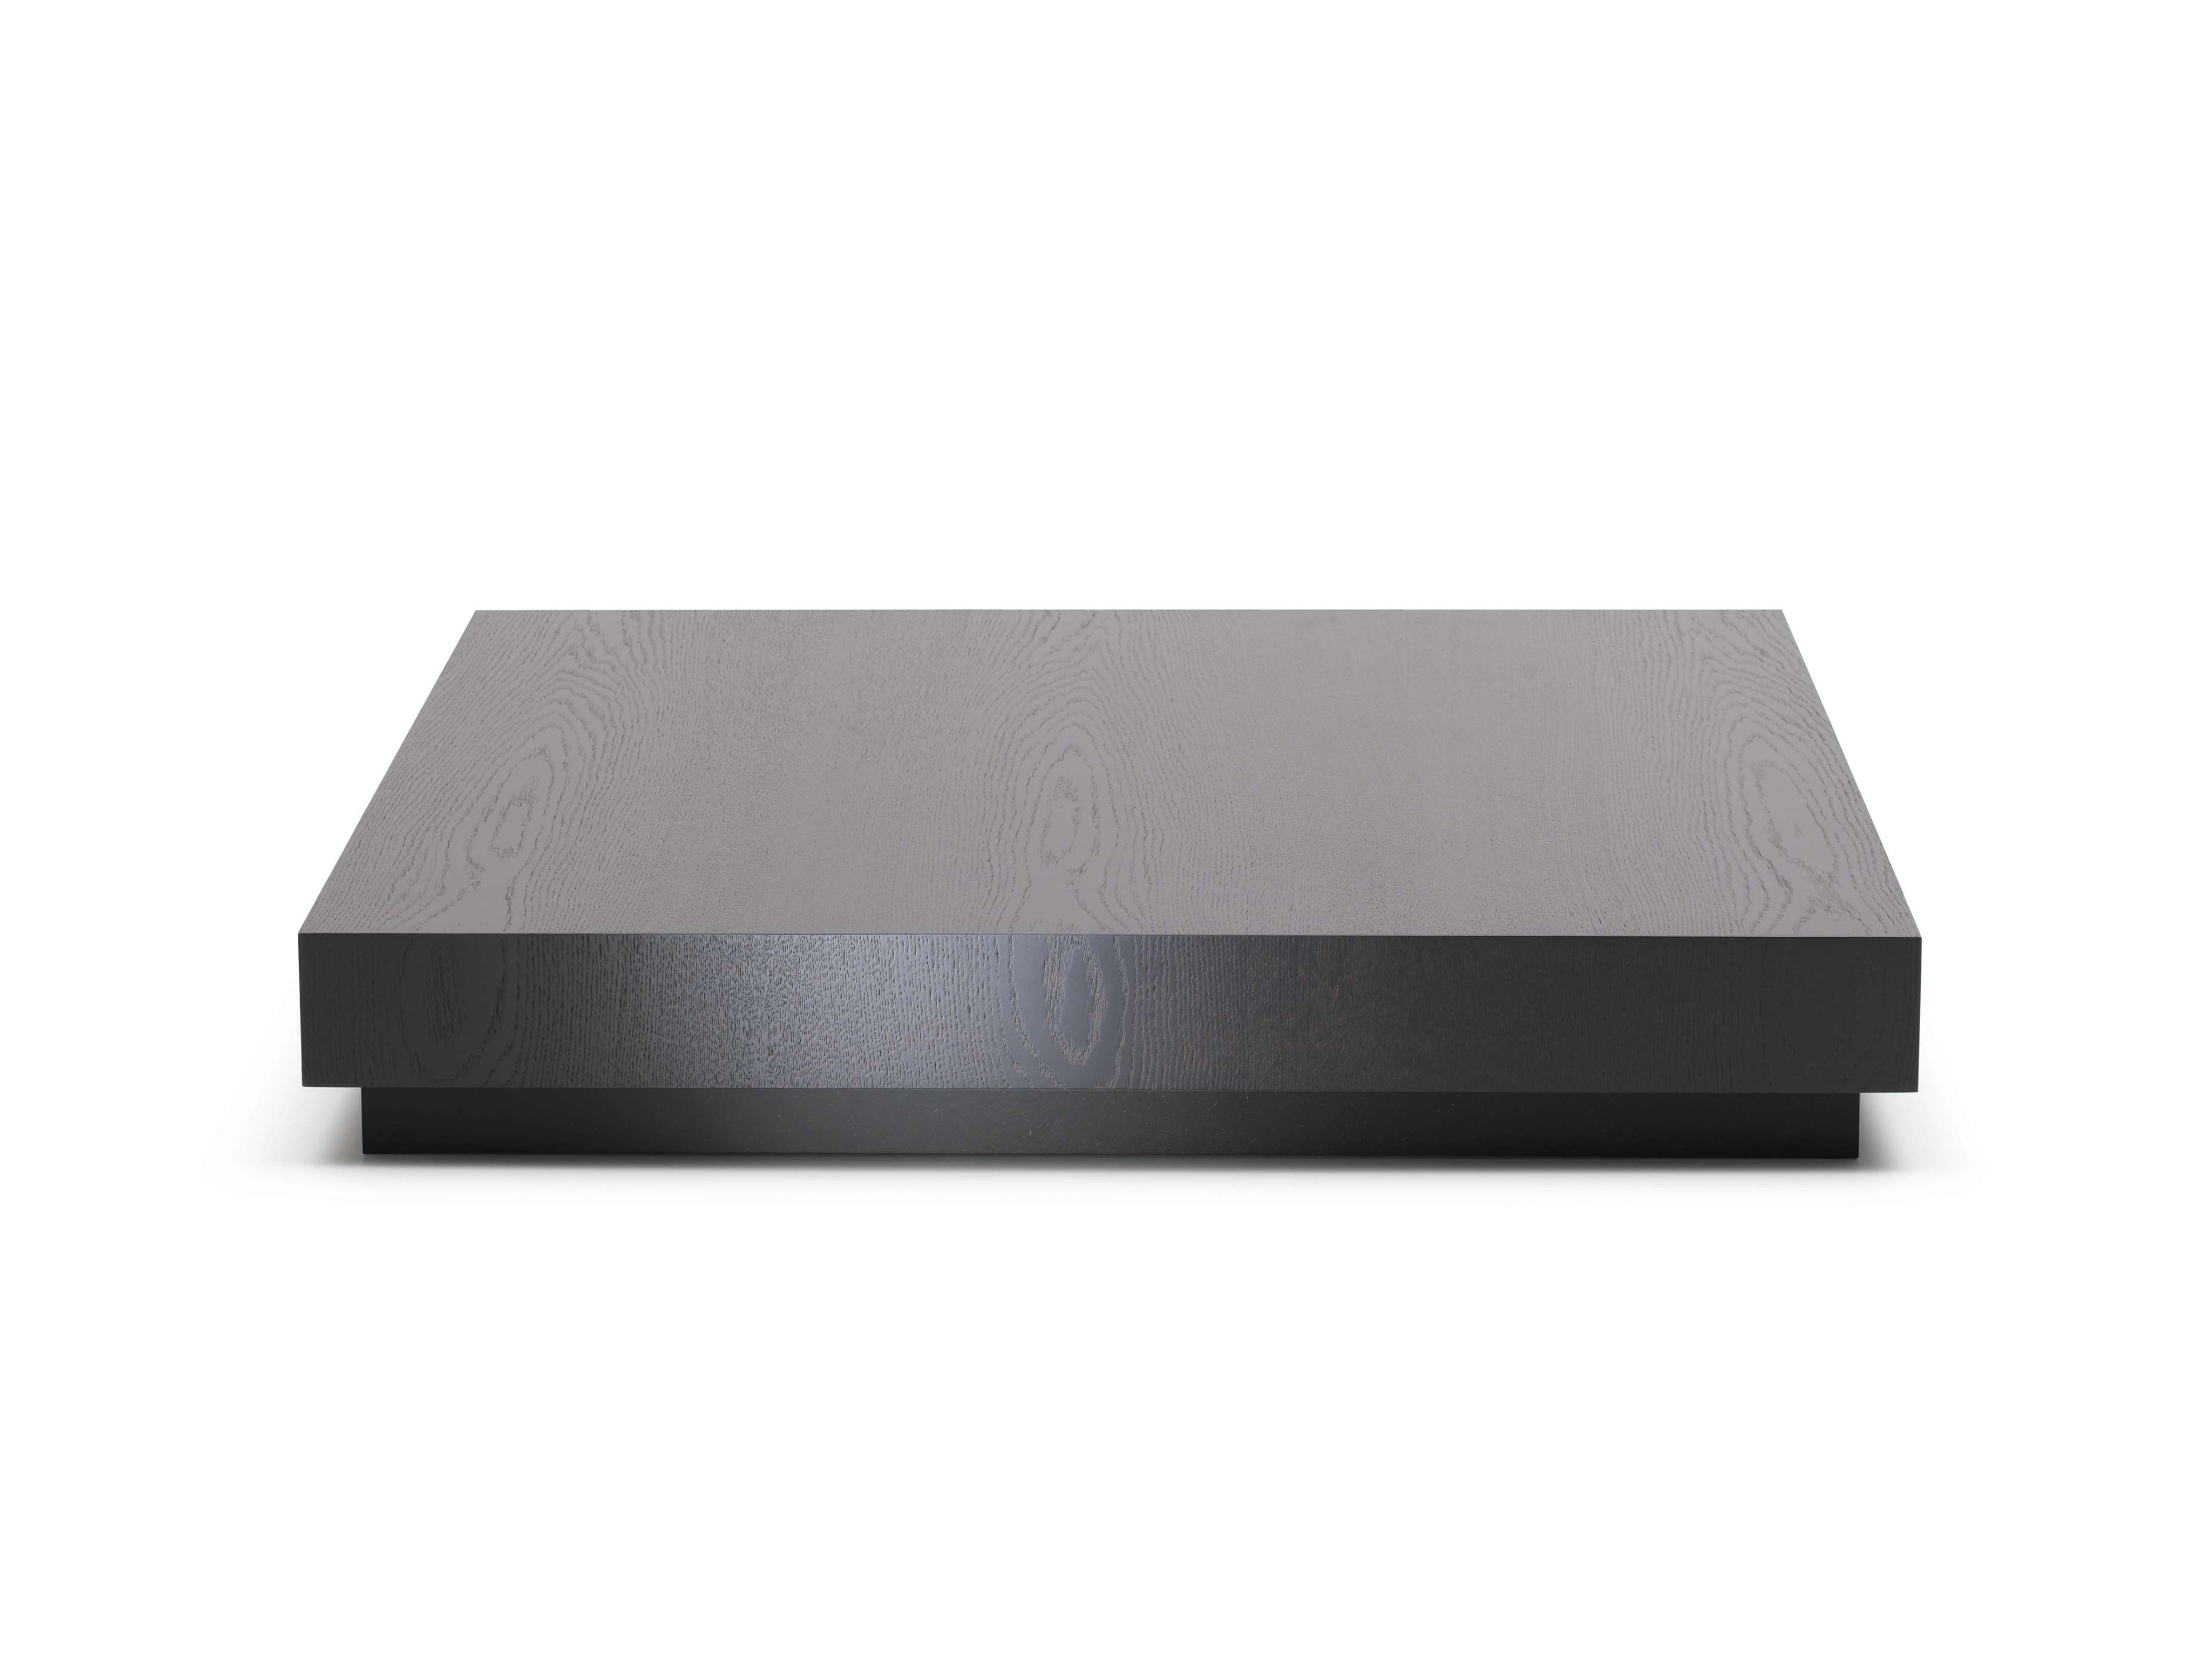 Square Wood Low Profile Coffee Table Painted With Black Color For For Famous Square Coffee Table Modern (View 7 of 20)